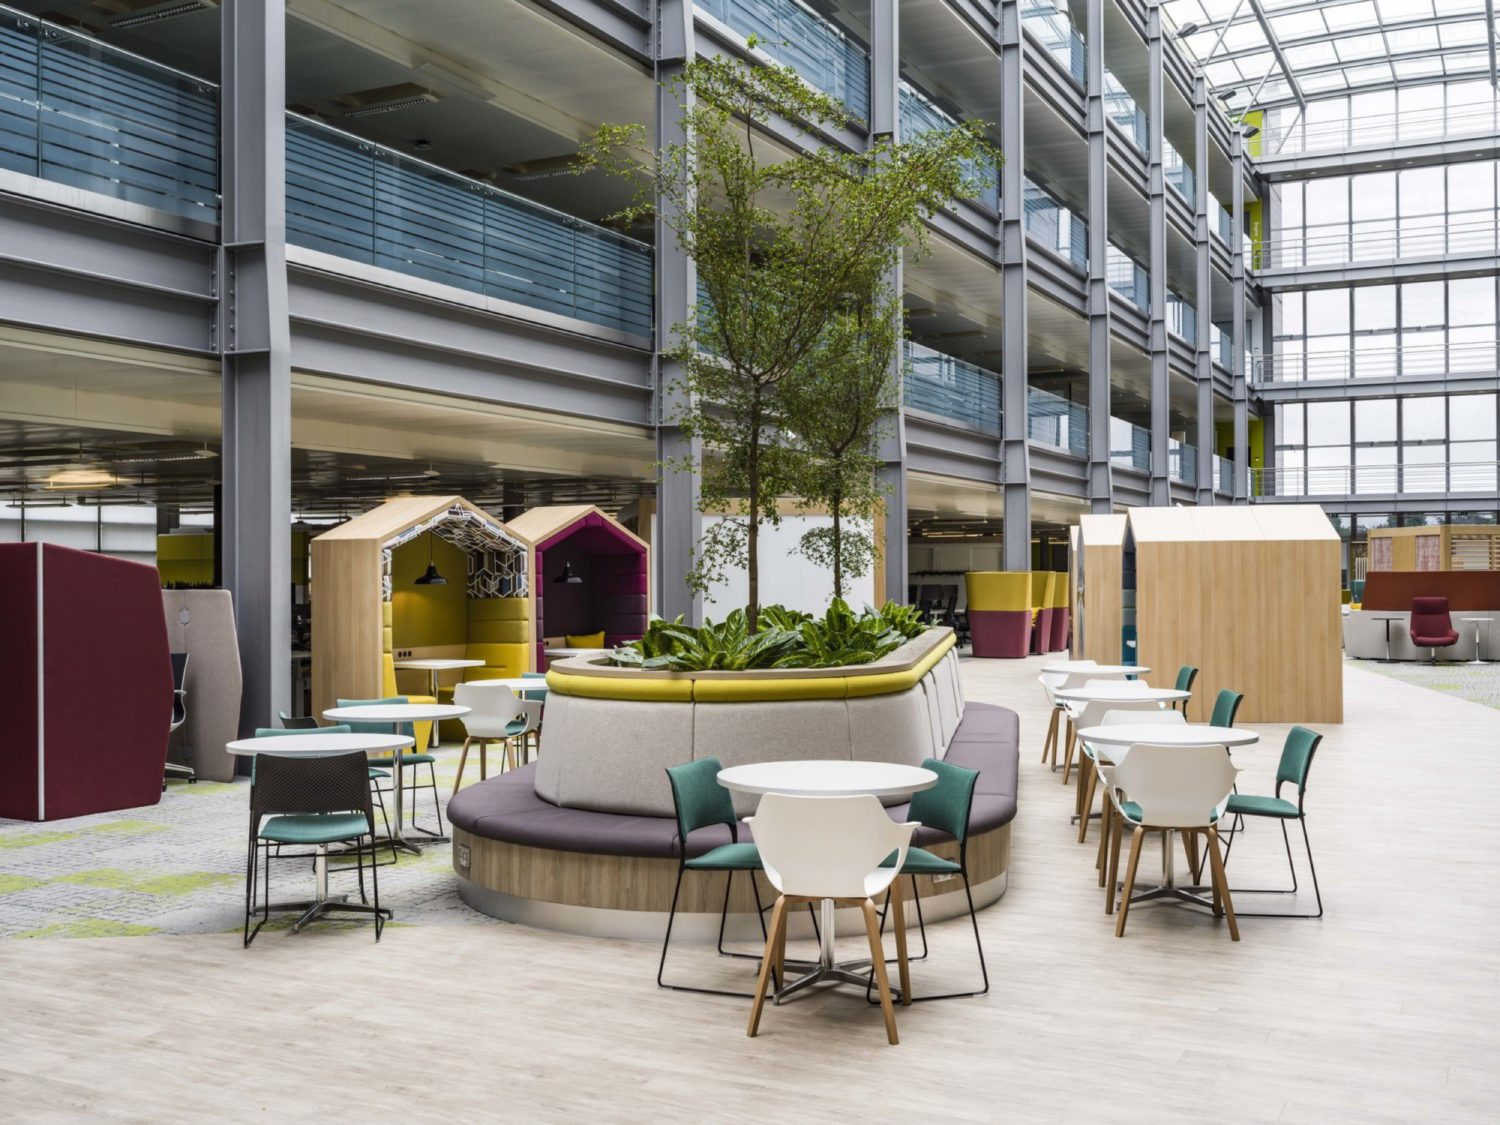 HMRC trees and office pods